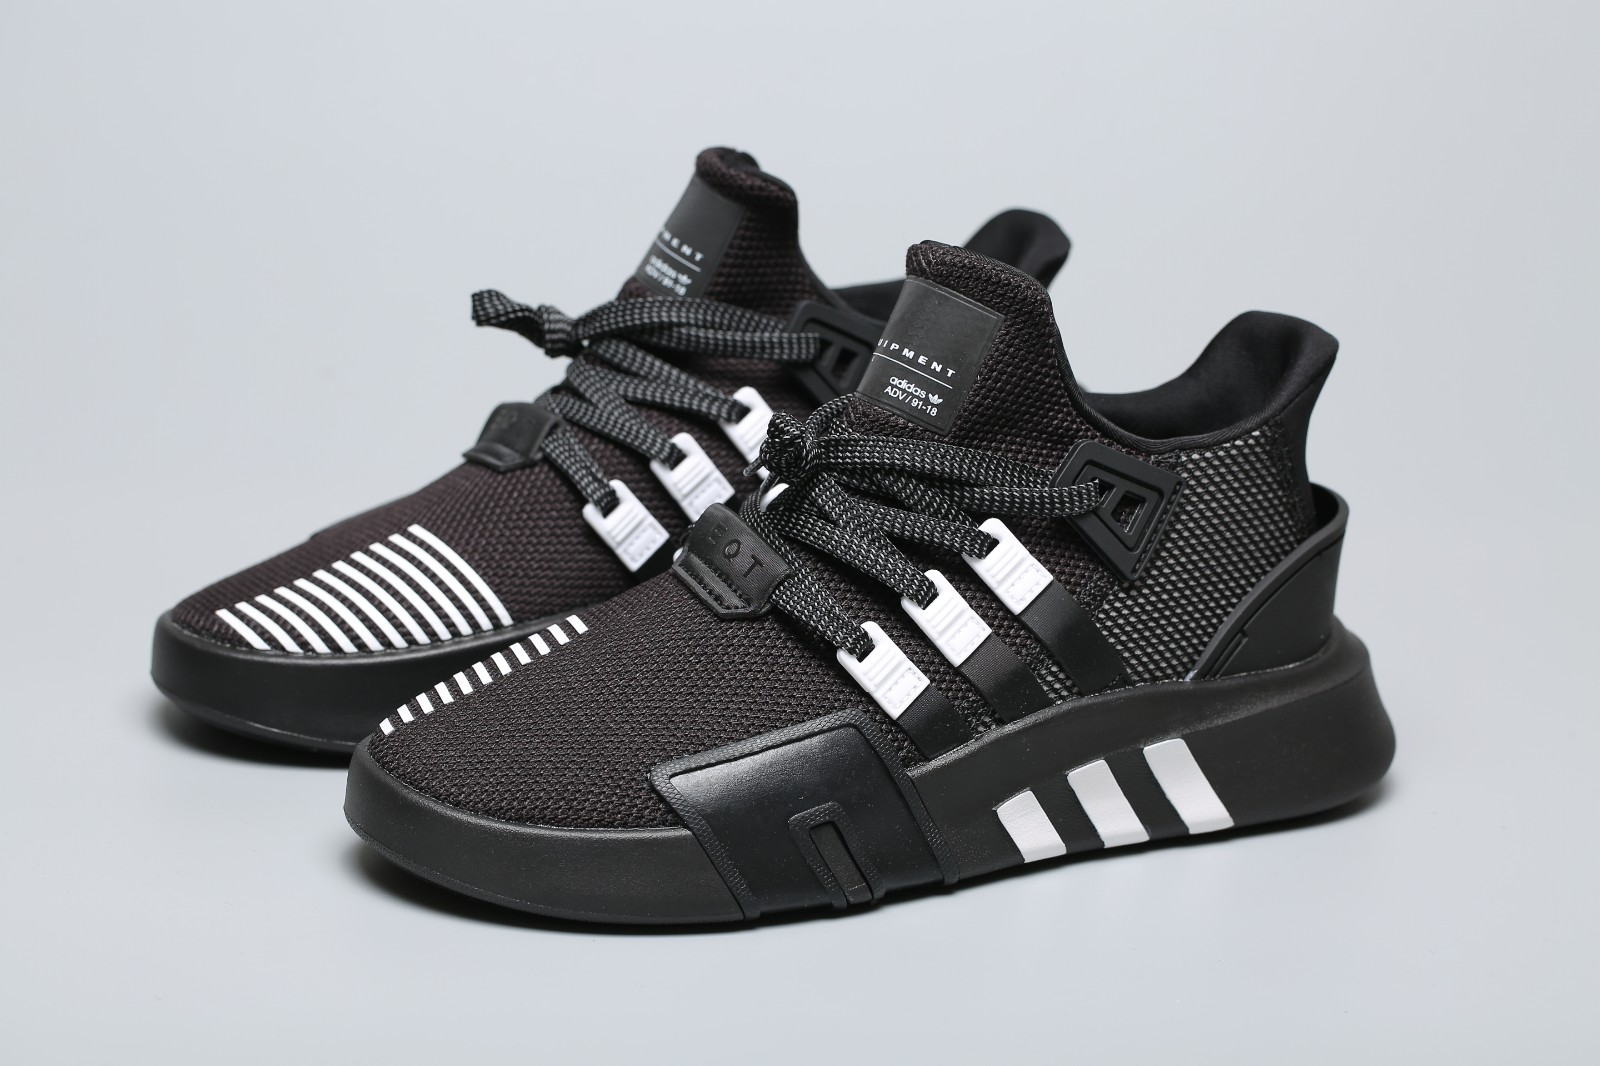 Adidas Originals EQT Bask ADV Black White Men Running Sneaker BD7773